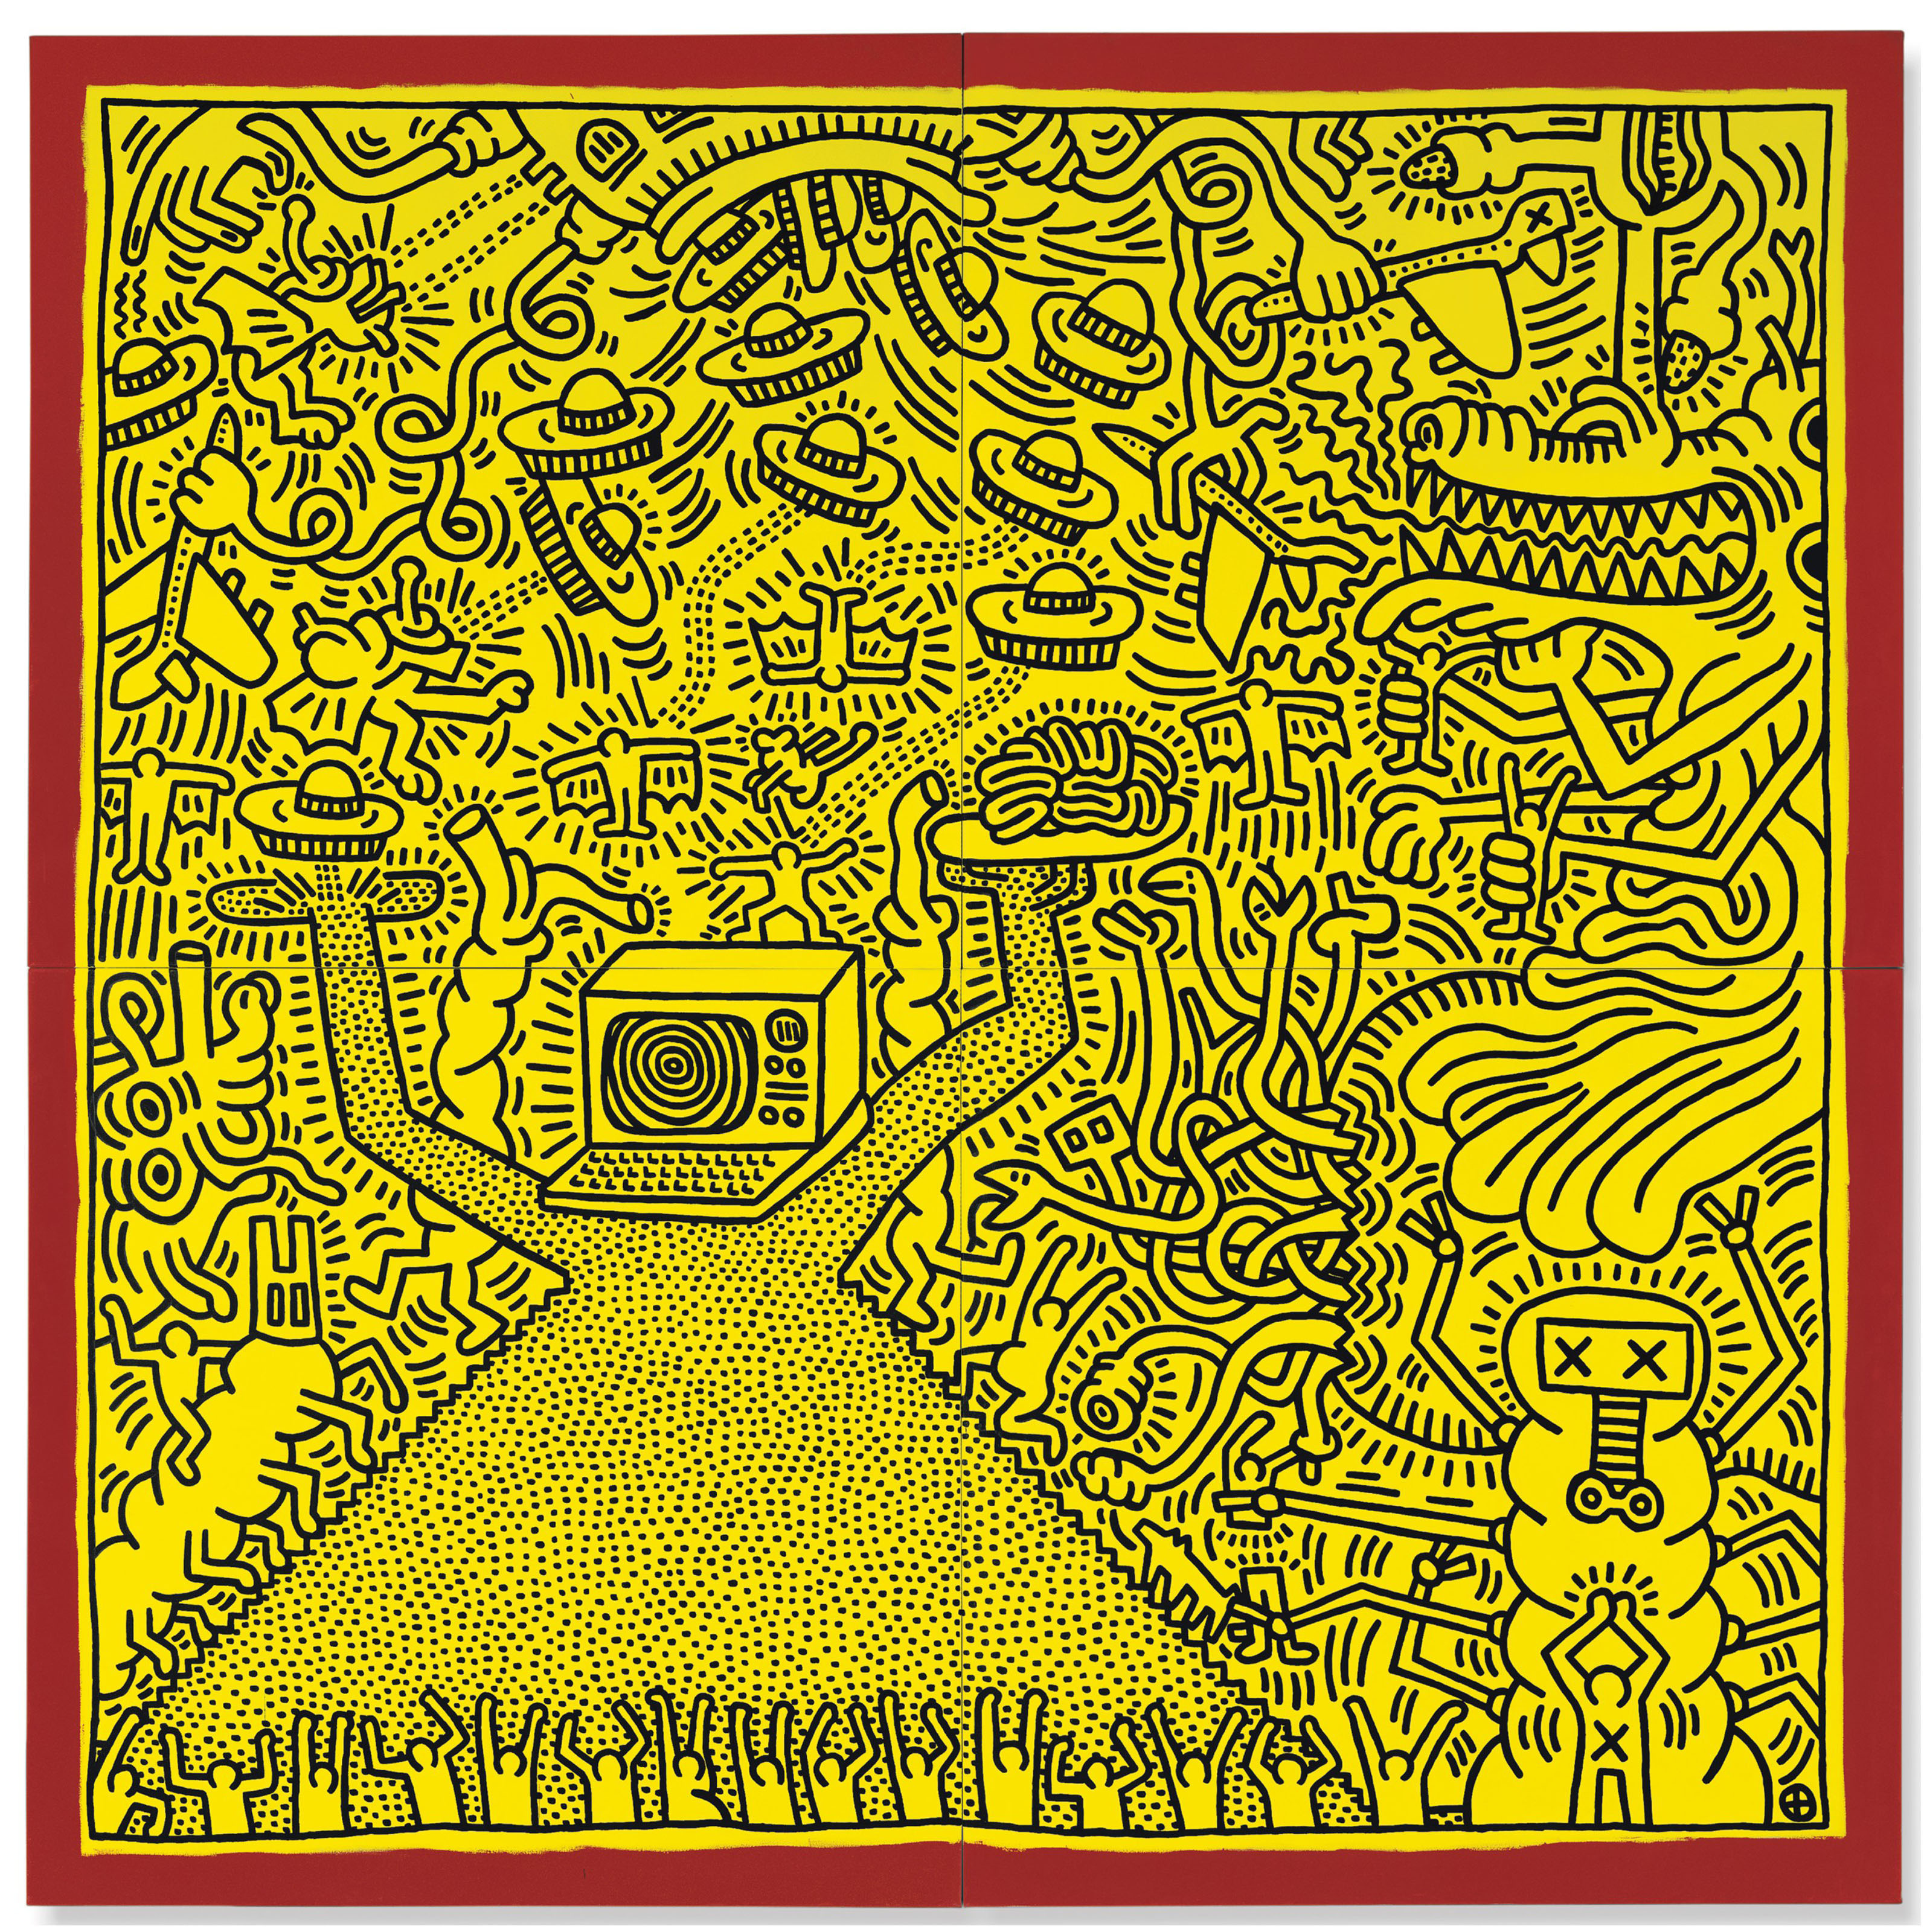 Keith Haring (1958-1990) | Untitled | Paintings, Contemporary ...